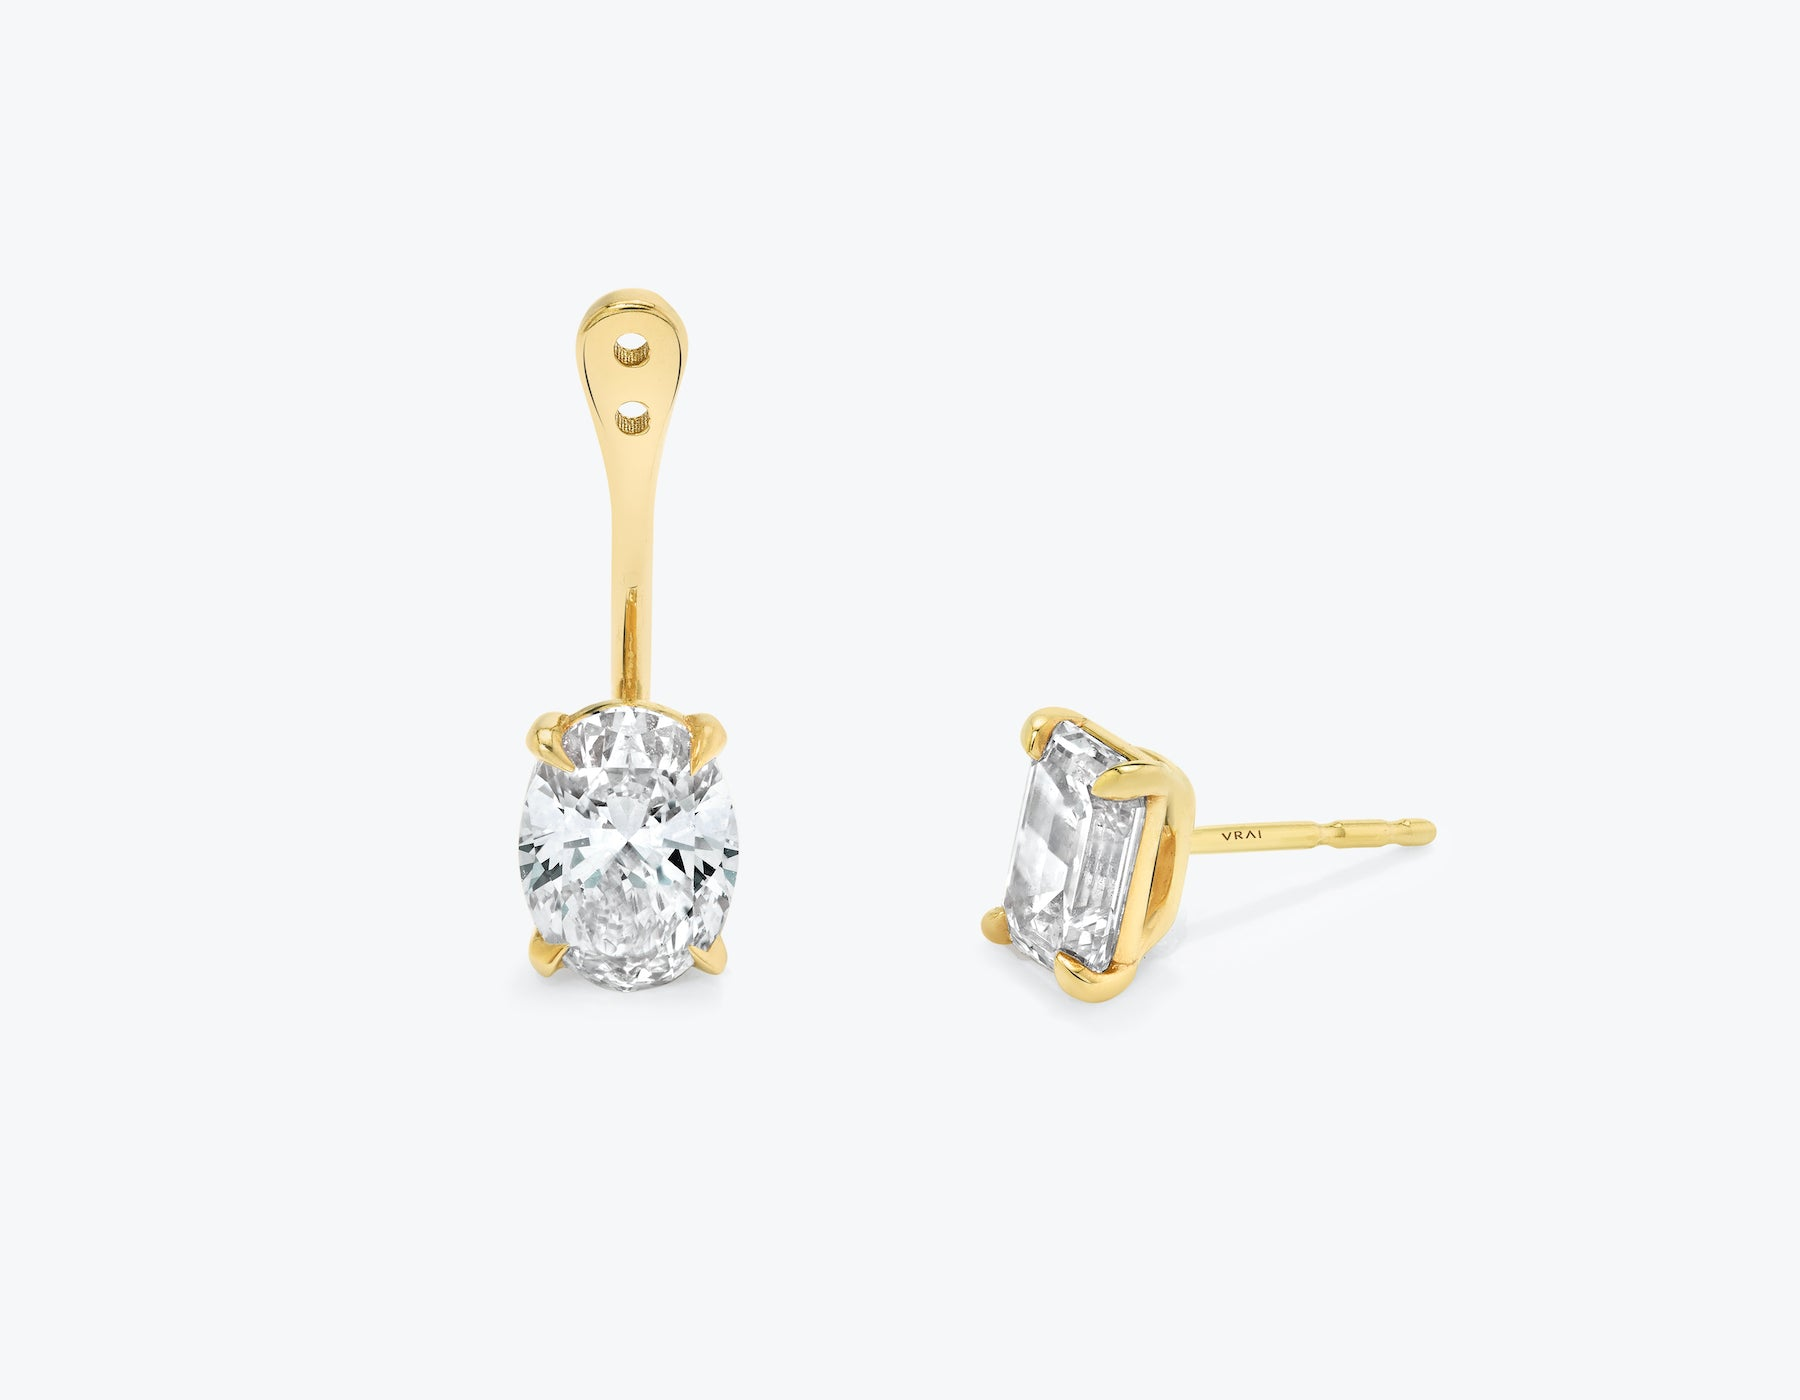 Vrai solitaire oval diamond drop ear jackets made in 14k solid gold with sustainably created diamonds with round solitaire diamond stud, 14K Yellow Gold